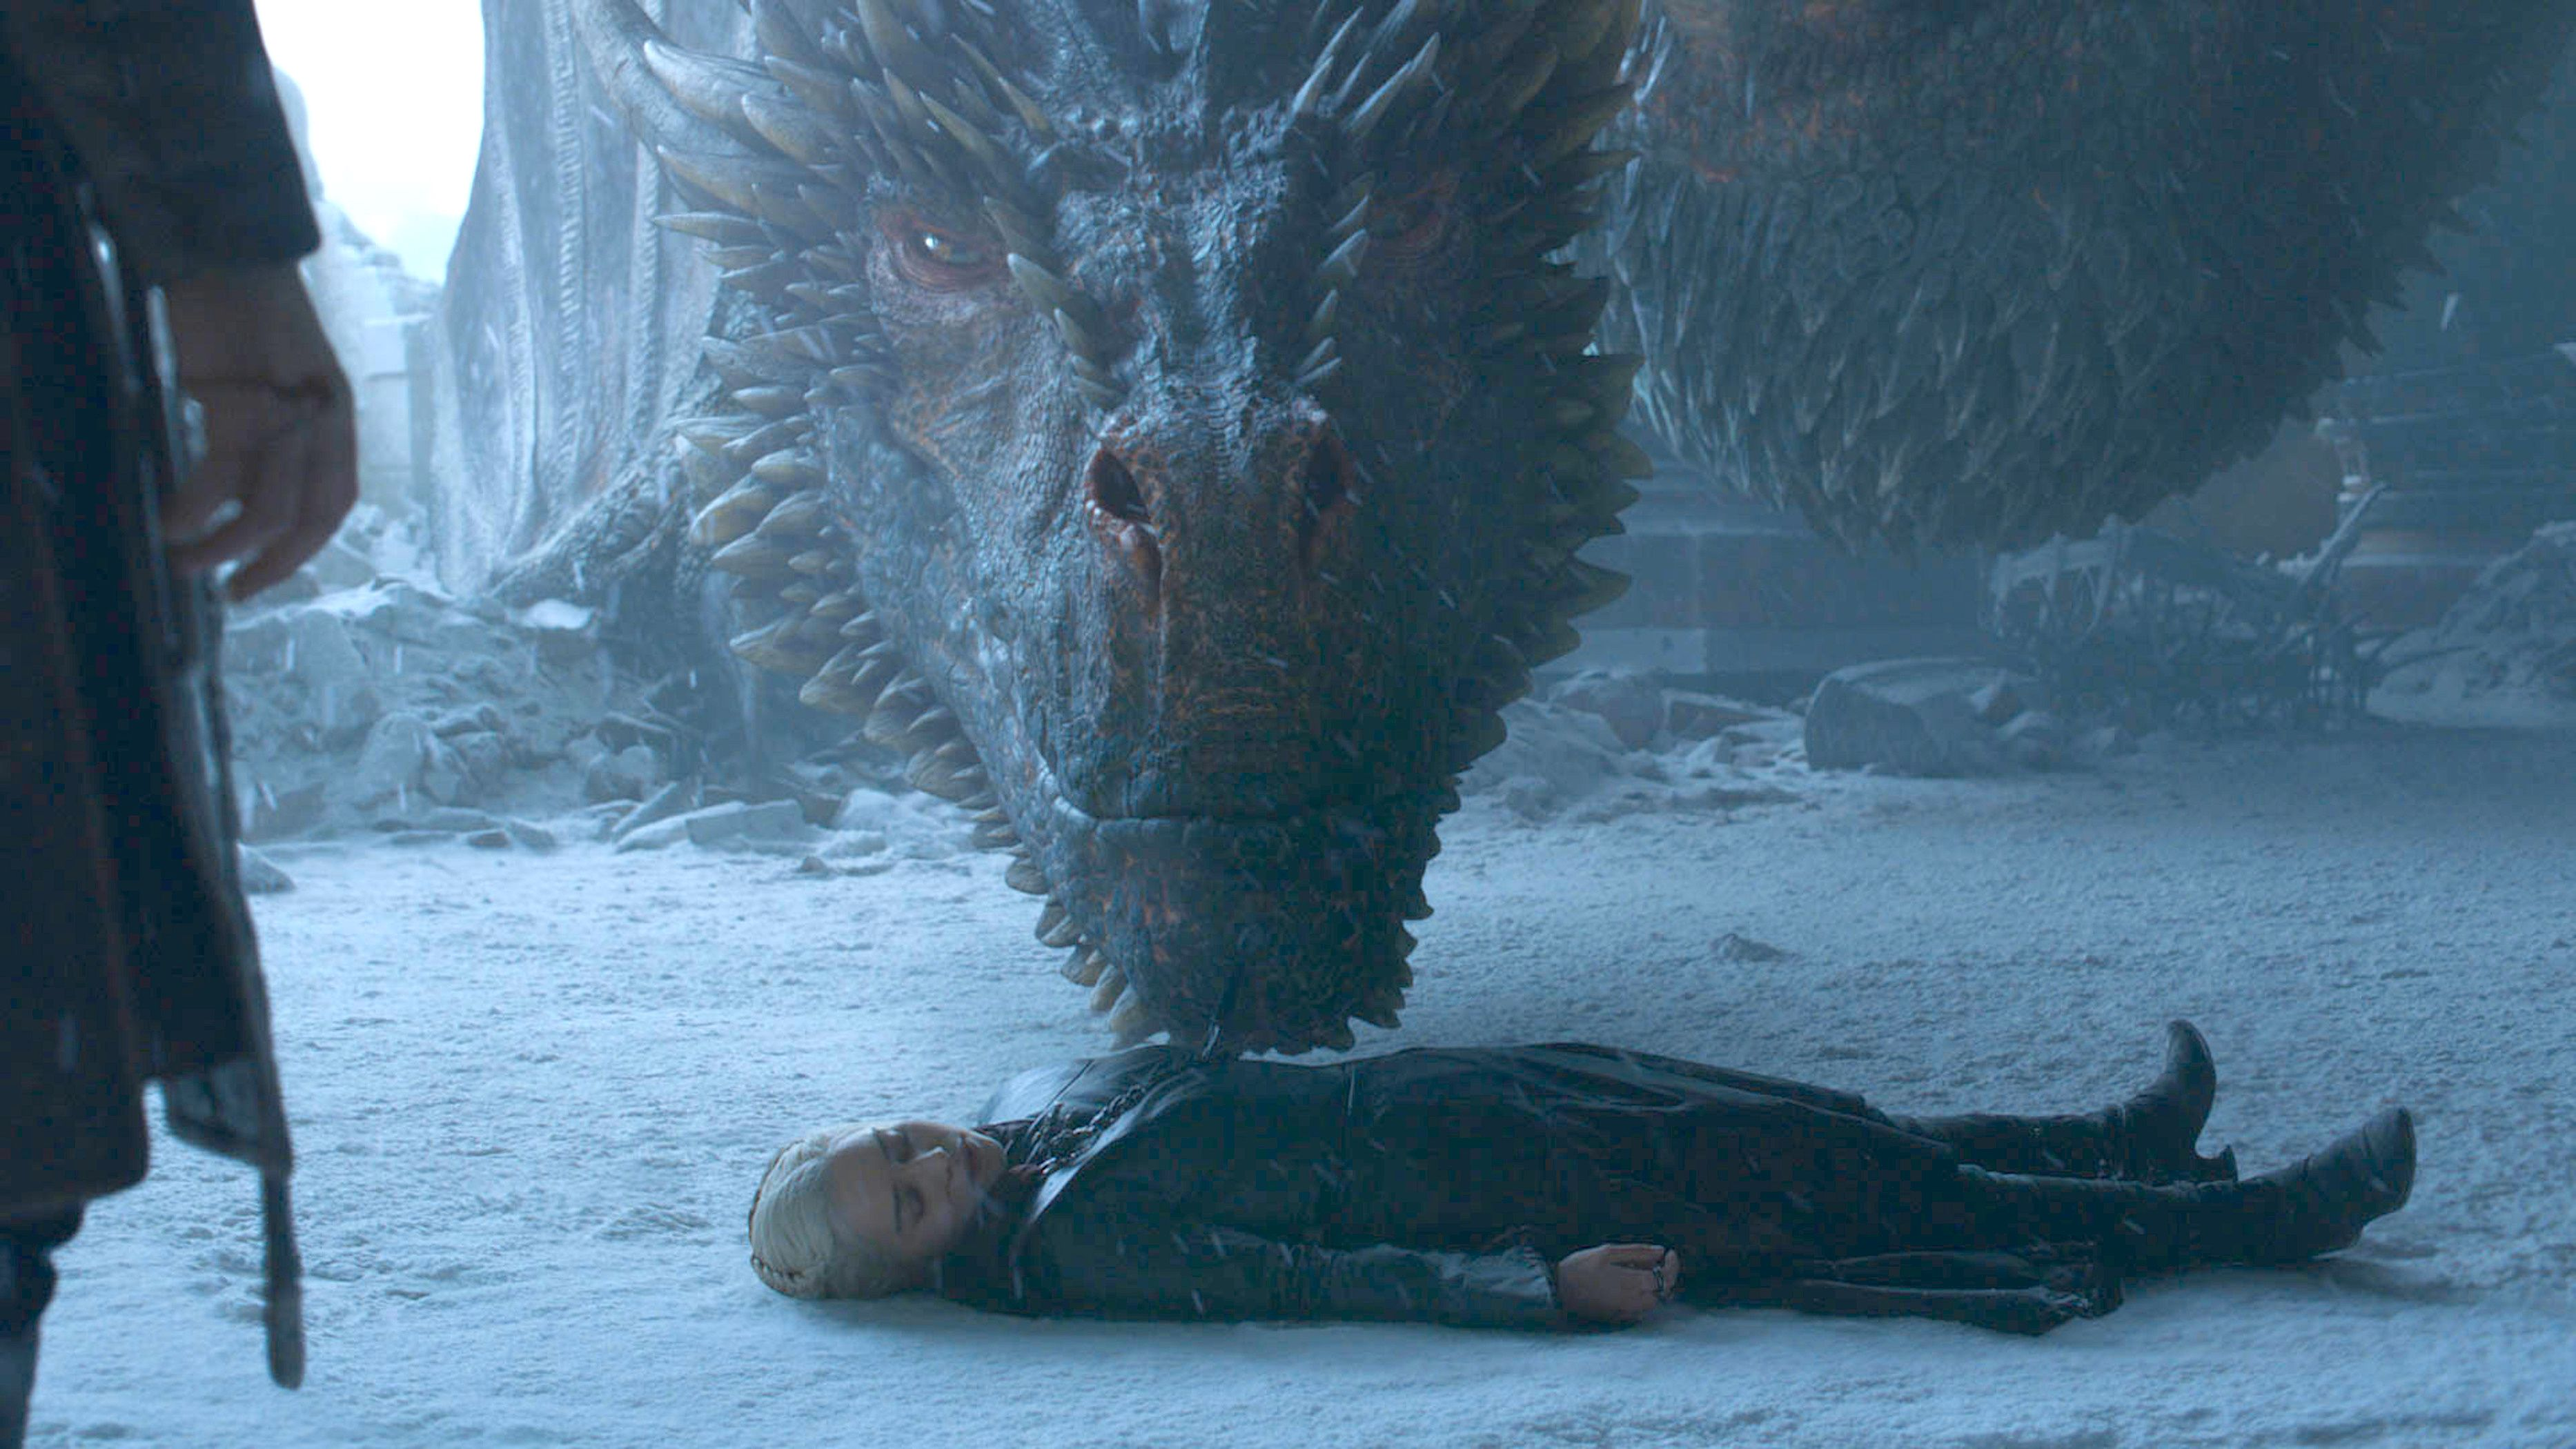 A Game of Thrones Fan Theory Says Drogon Is Bringing Daenerys to Be Resurrected